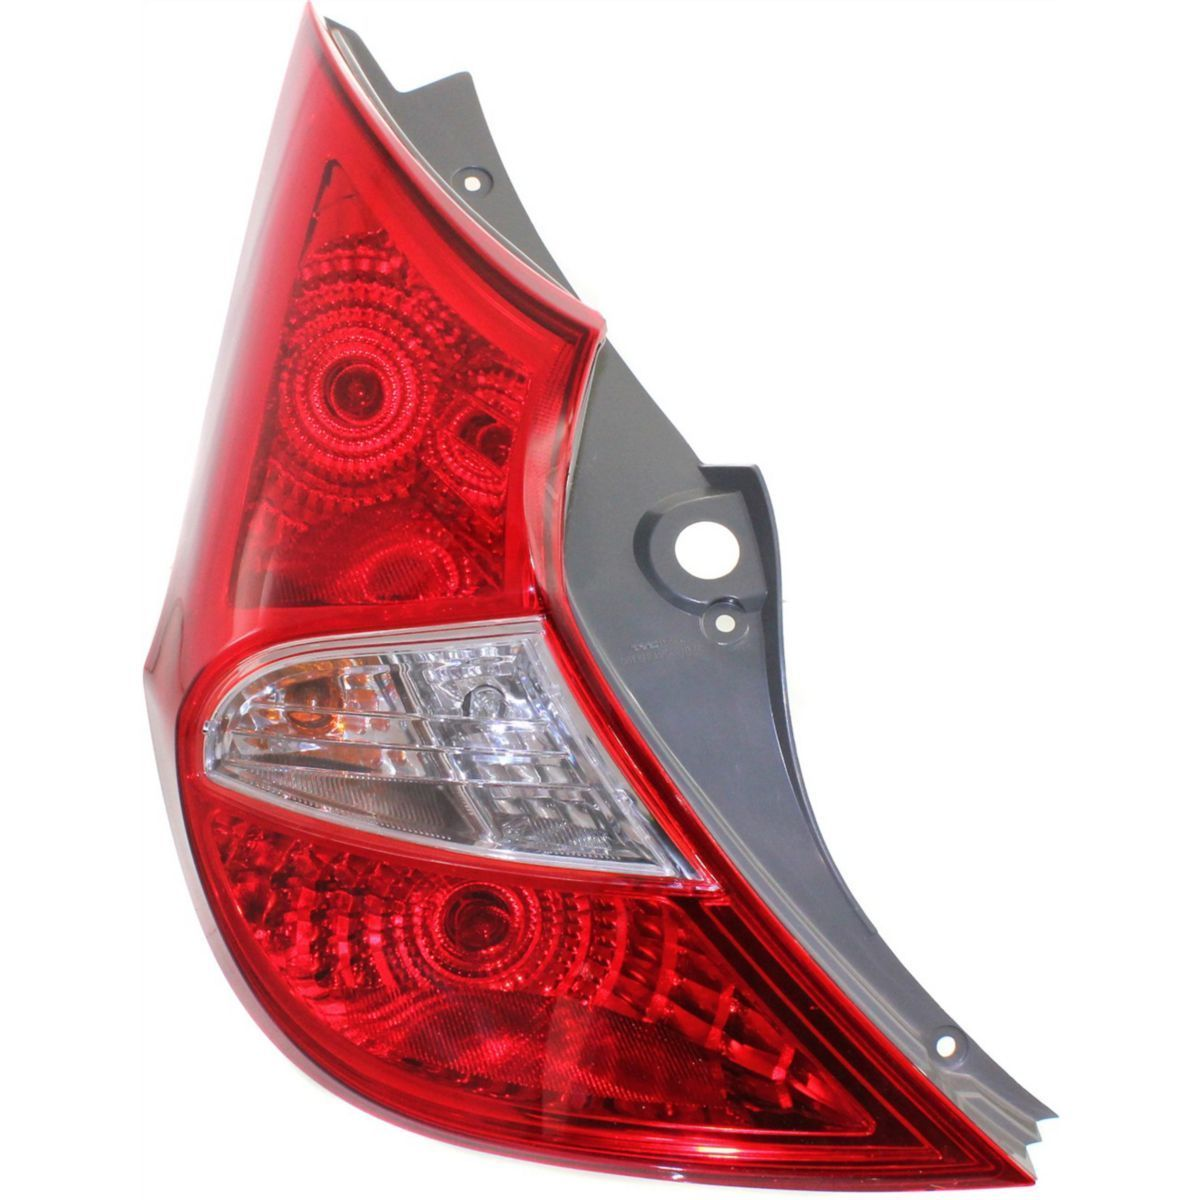 <b> New Tail Light Assembly Driver Side Fits 2012-2014 Accent Hatchback HY2800143 924011R210 <b>